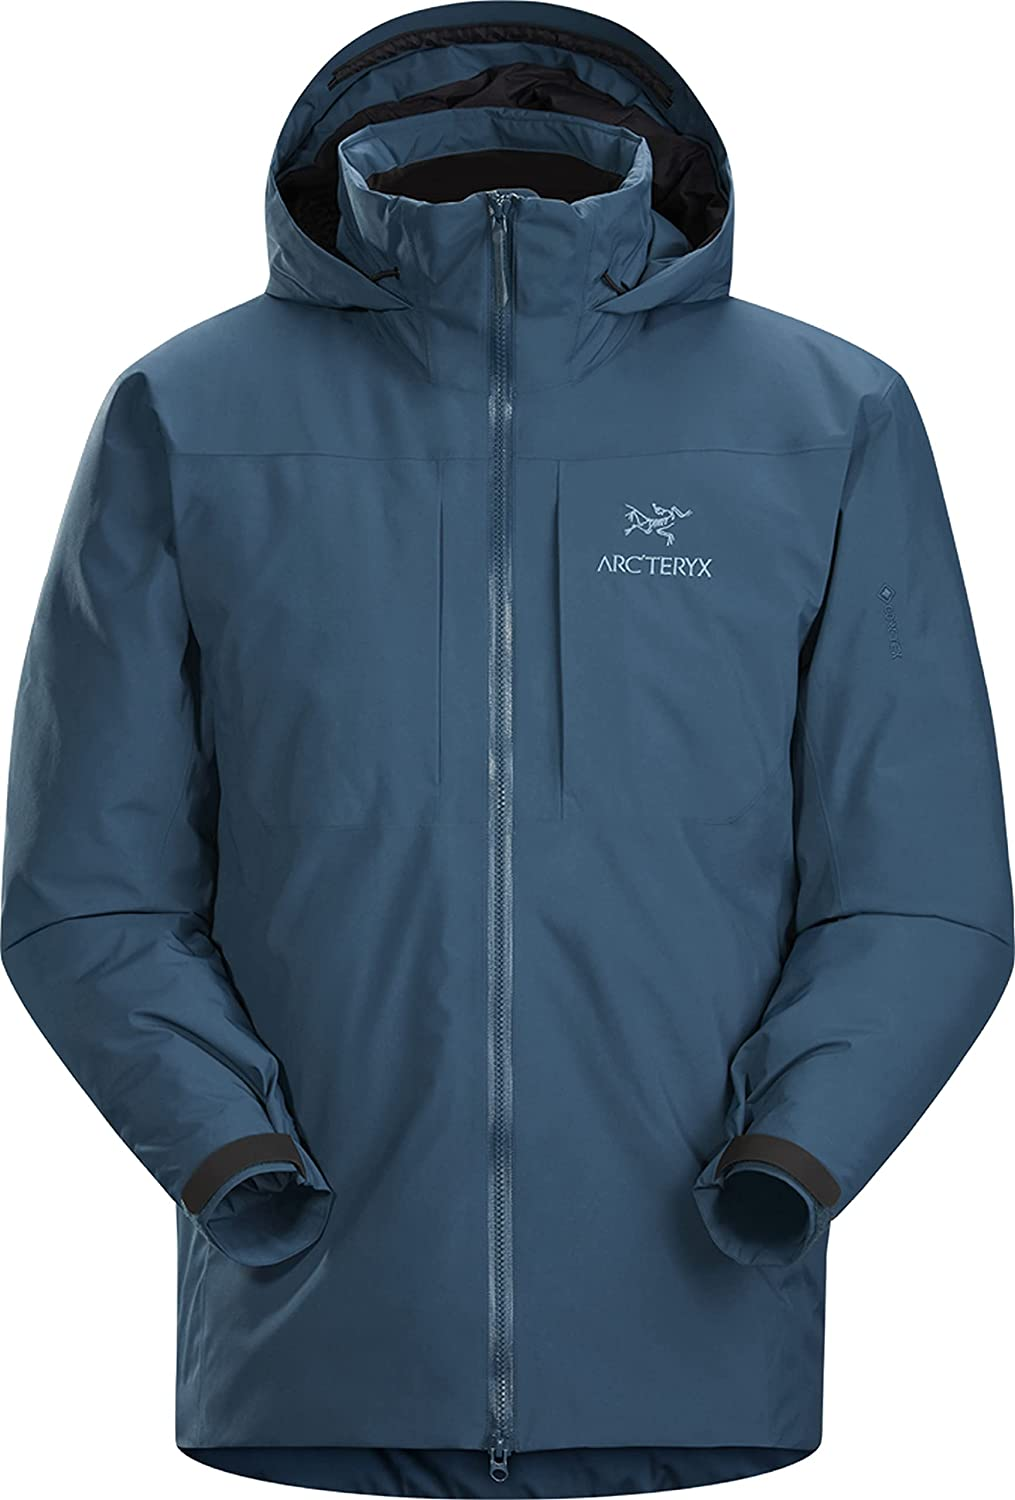 Arc'teryx Fission SV Jacket Men's | Versatile, synthetically Insulated, Gore-Tex Waterproof Jacket for Severe weathe